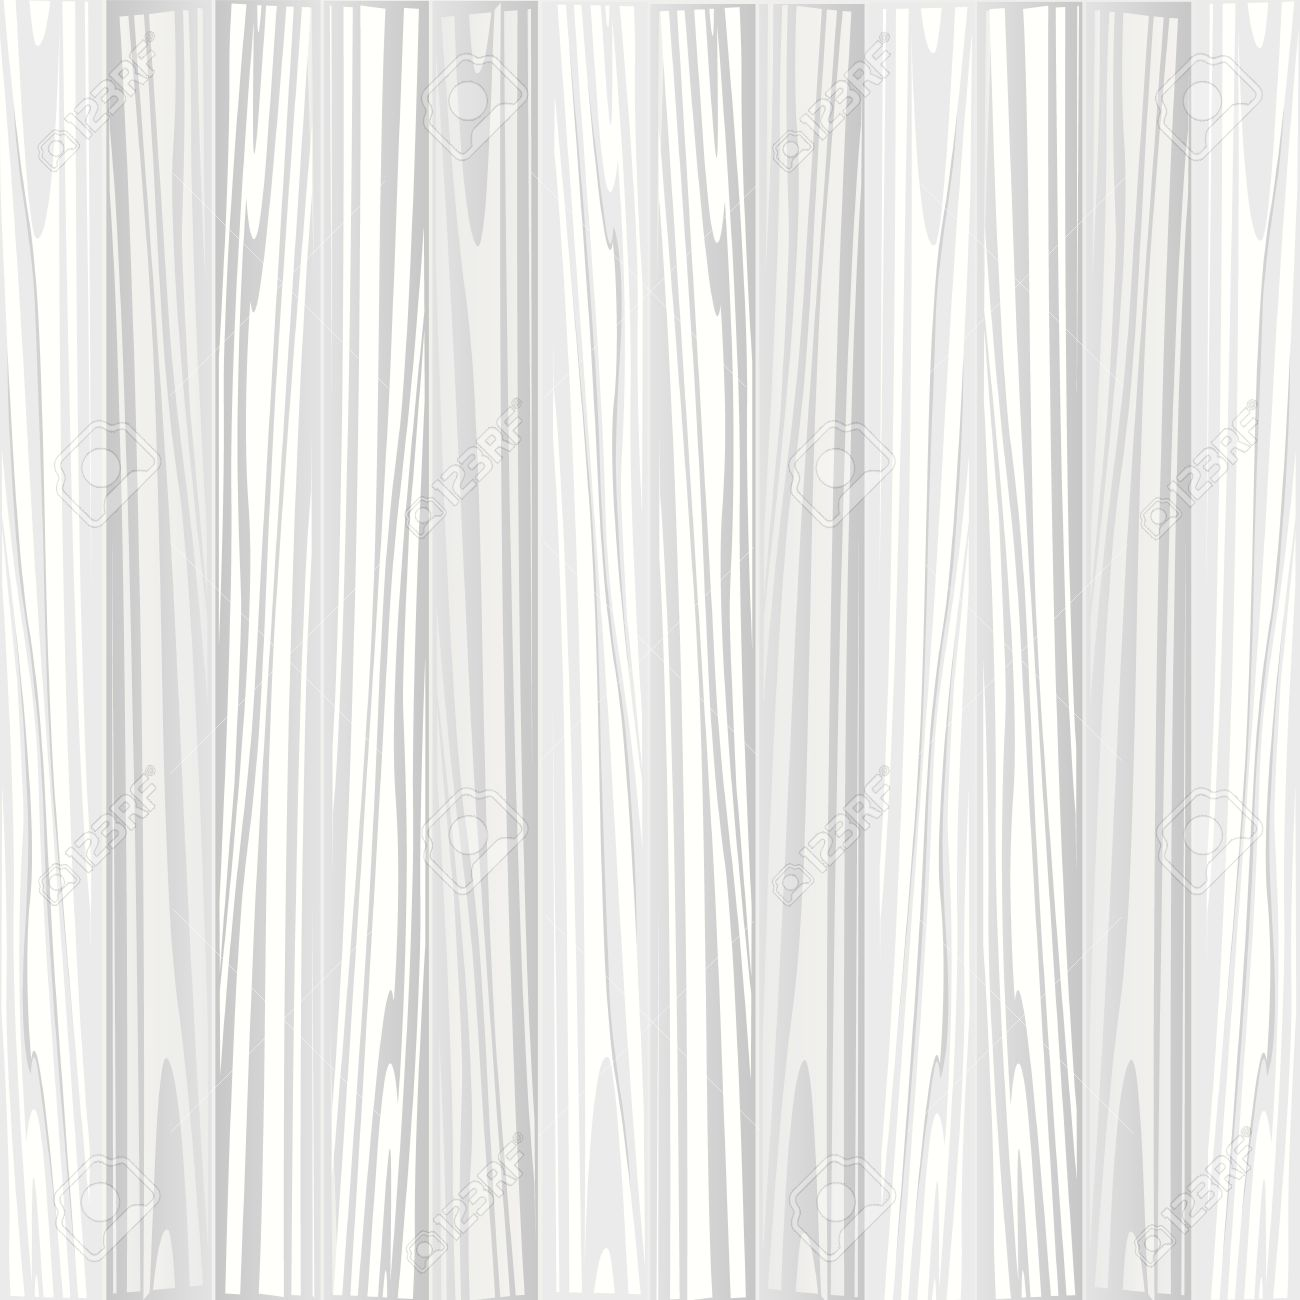 High Resolution White Wood Backgrounds Royalty Free Cliparts ...